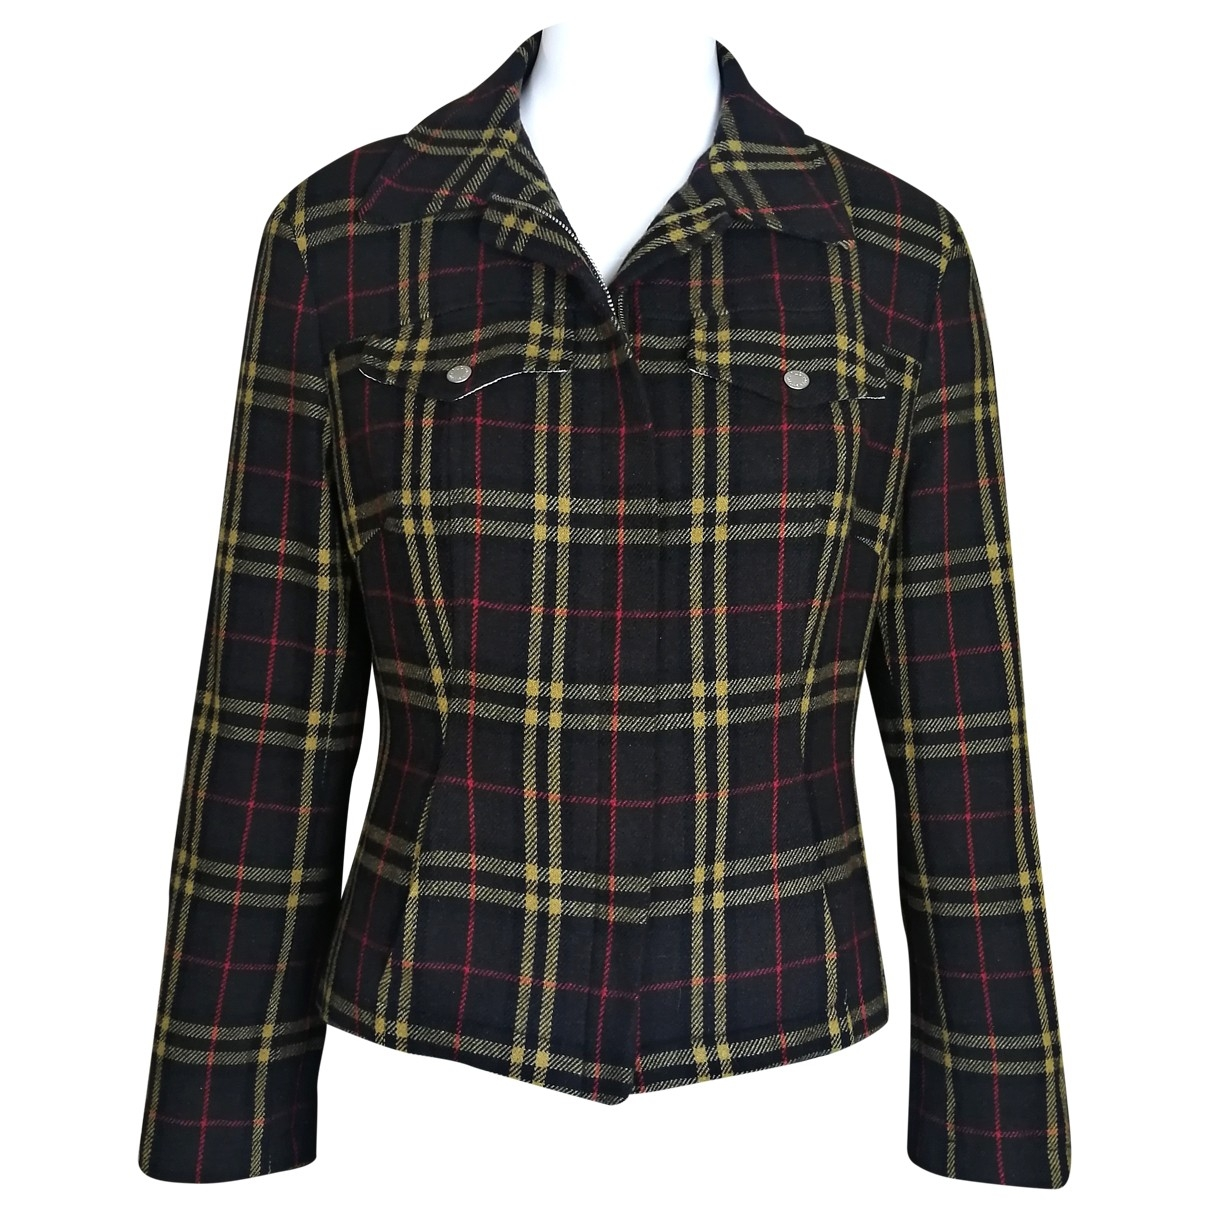 D&g \N Multicolour Wool jacket for Women 44 IT